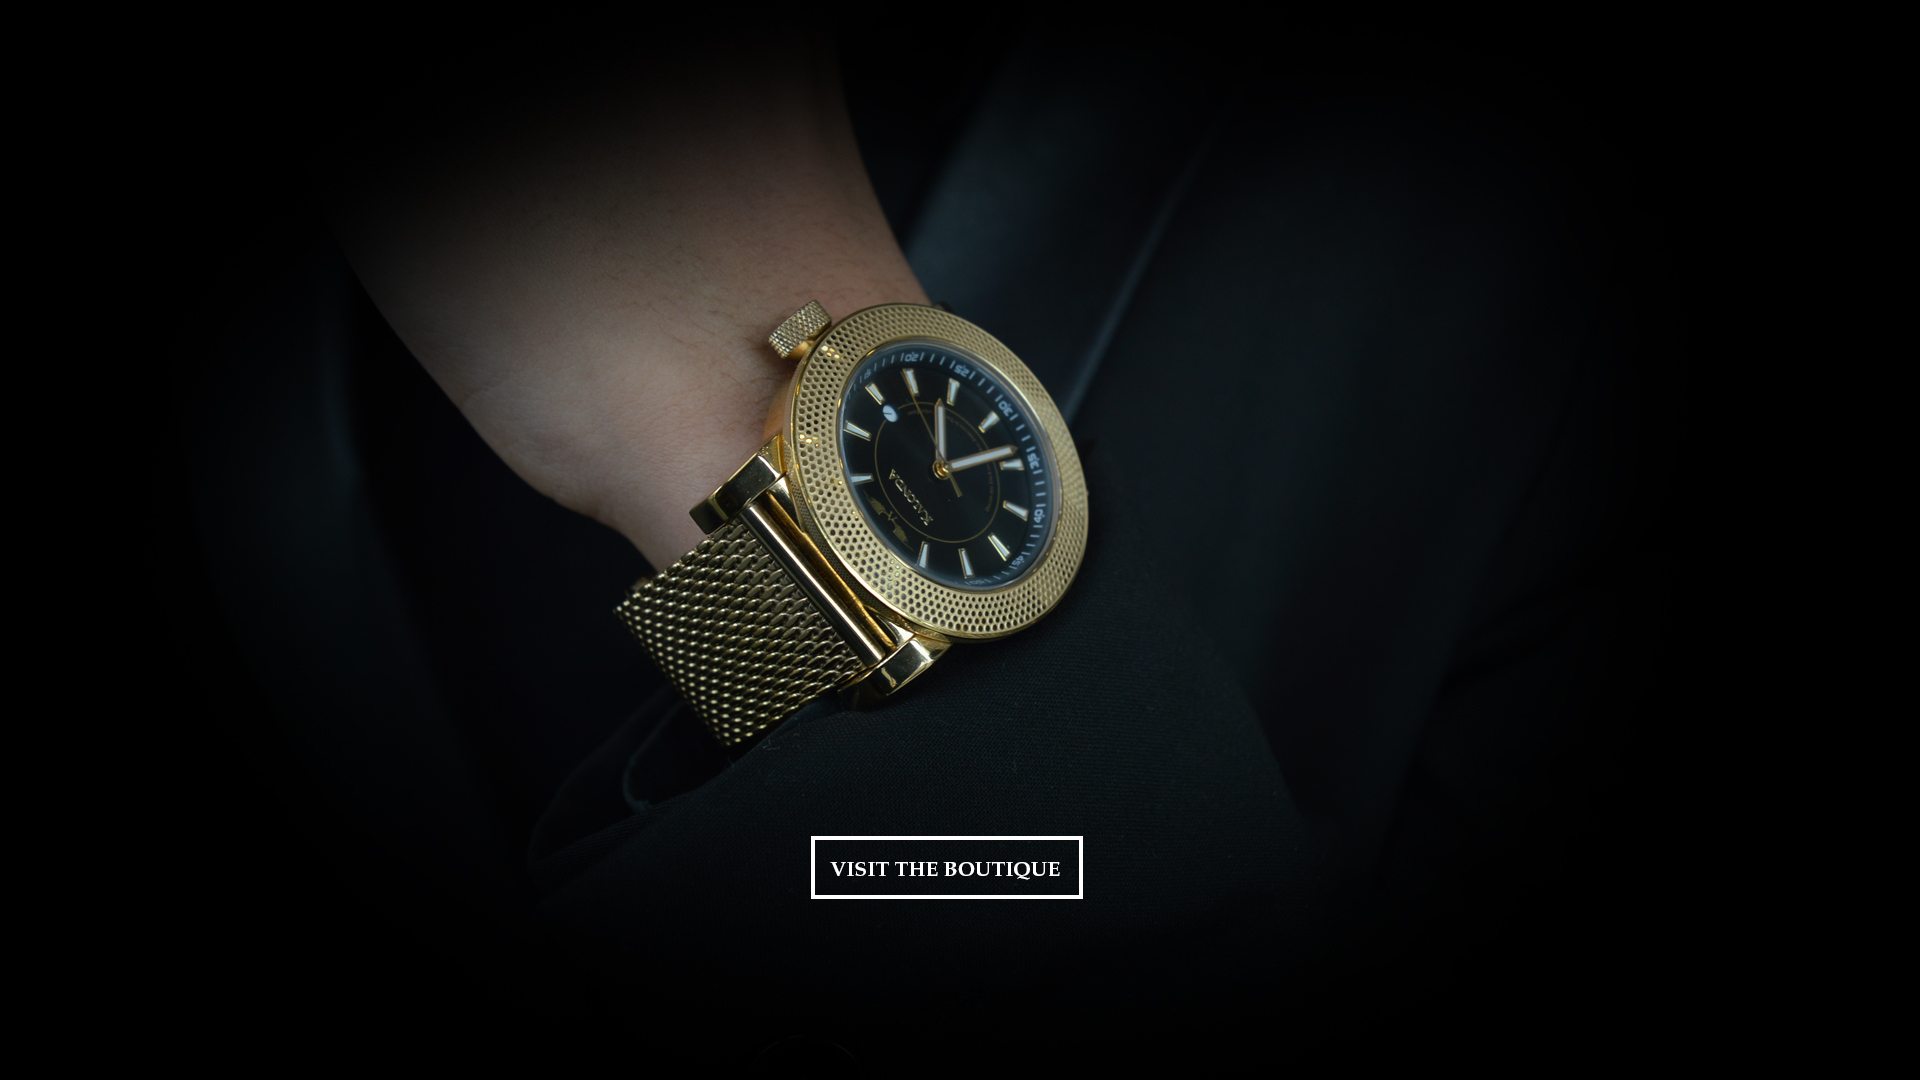 Kalonda - The Royal Gold Watch - Suit